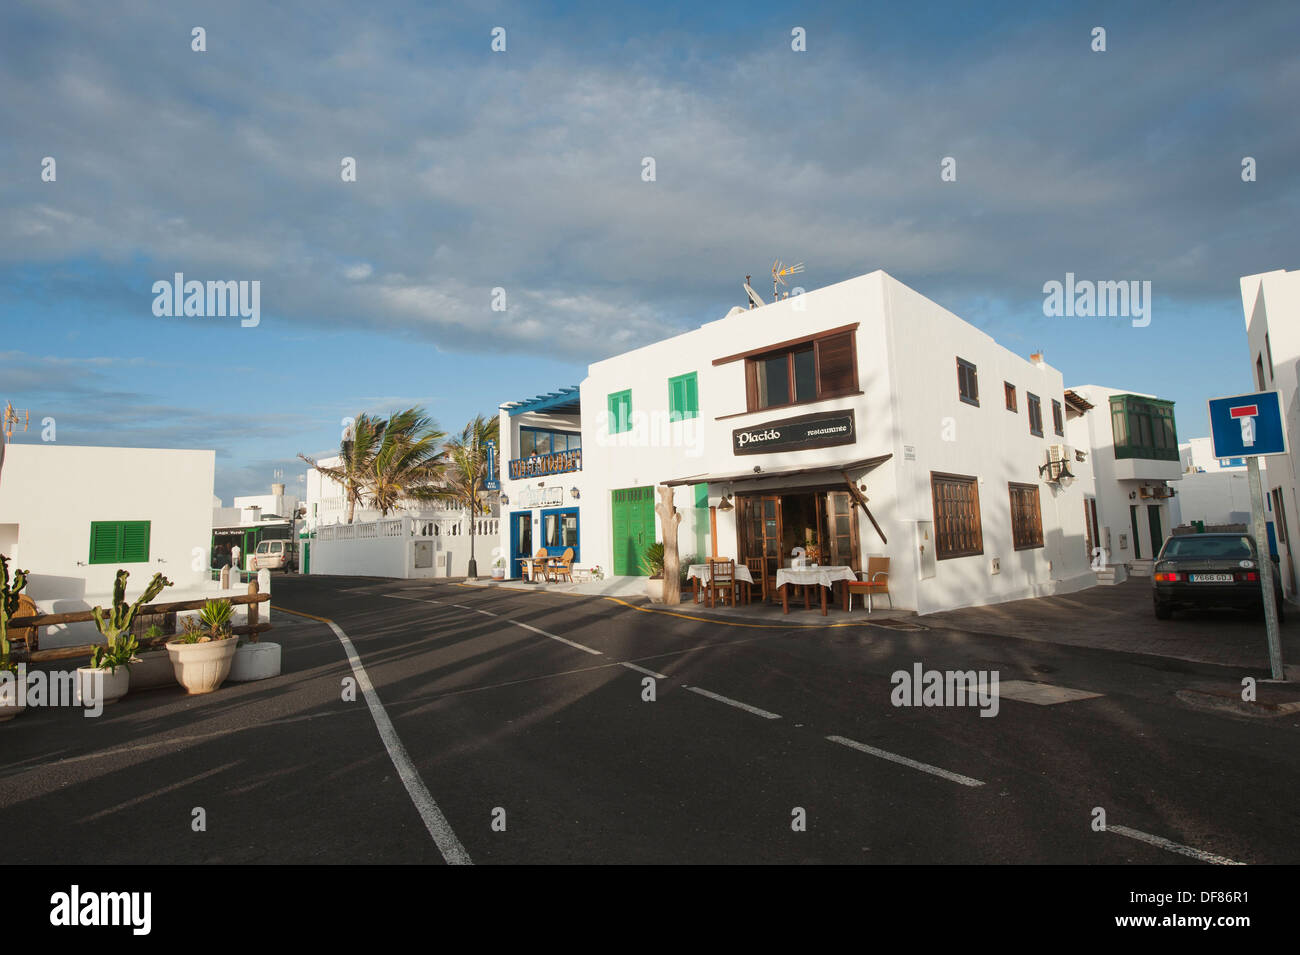 Street views ar El Golfo, Lanzarote, Canary Islands, Spain. Stock Photo